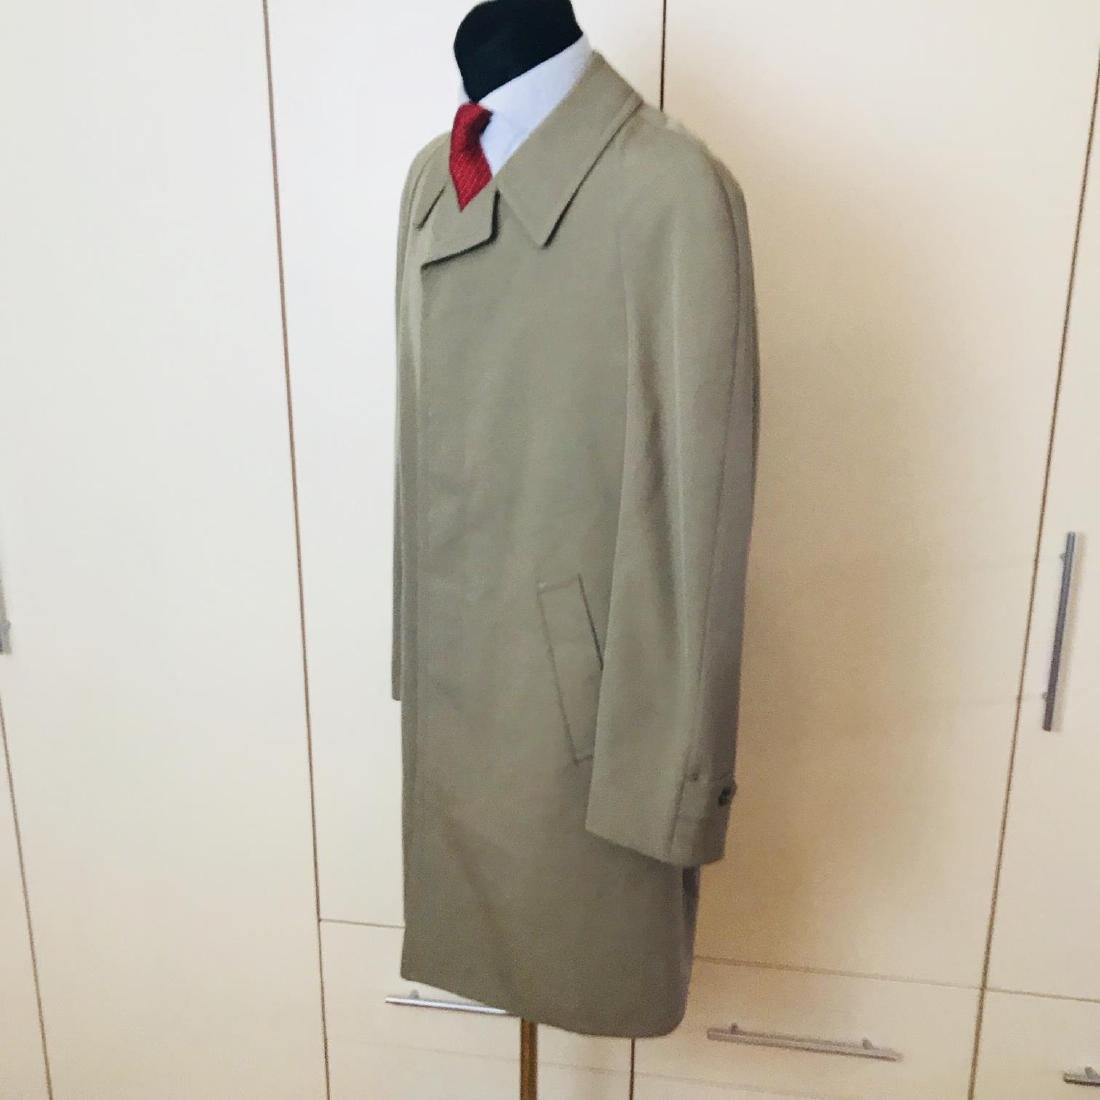 Vintage Men's Trench Coat Size US 38 EUR 48 - 6